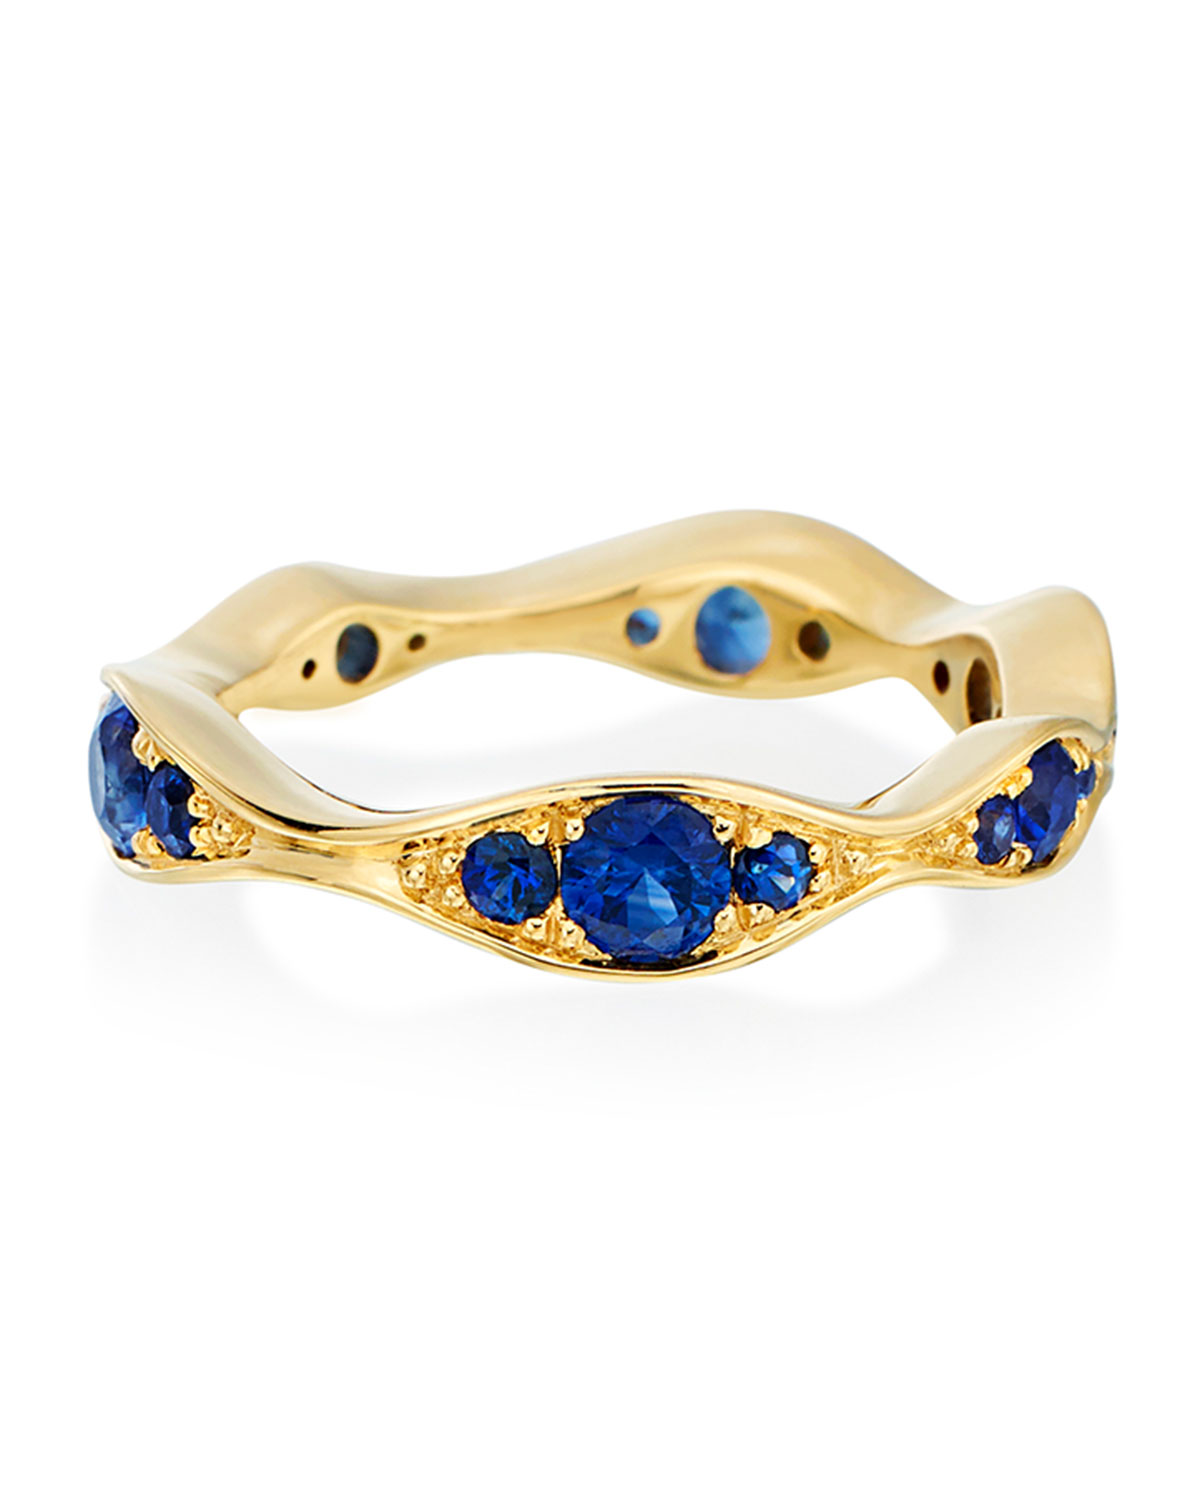 MARIA CANALE 18K Gold Blue Sapphire Wide Wave Ring